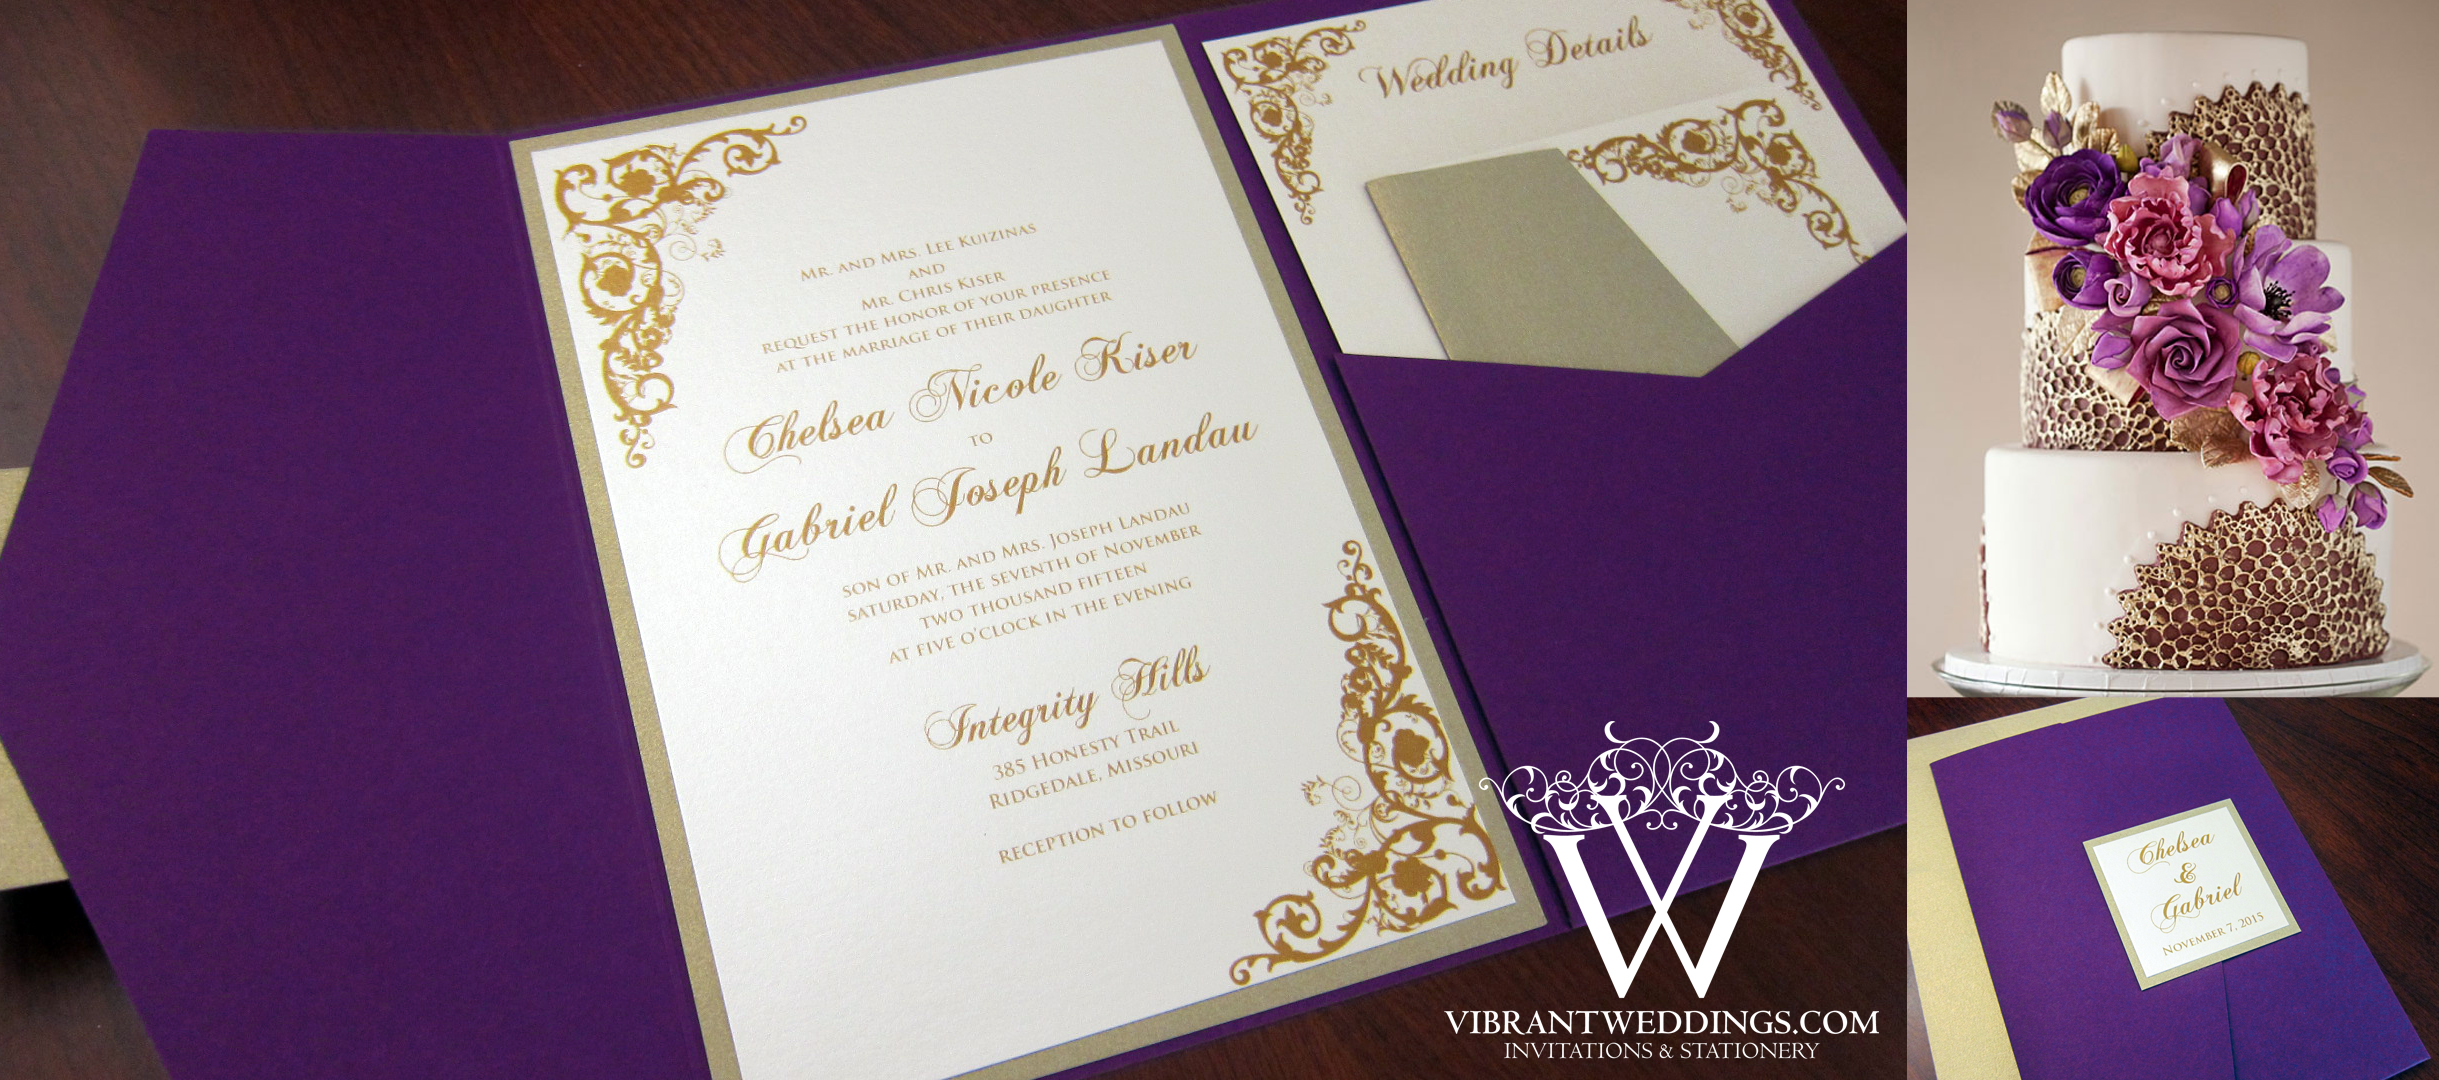 Pocket Fold Invitations – A Vibrant Wedding